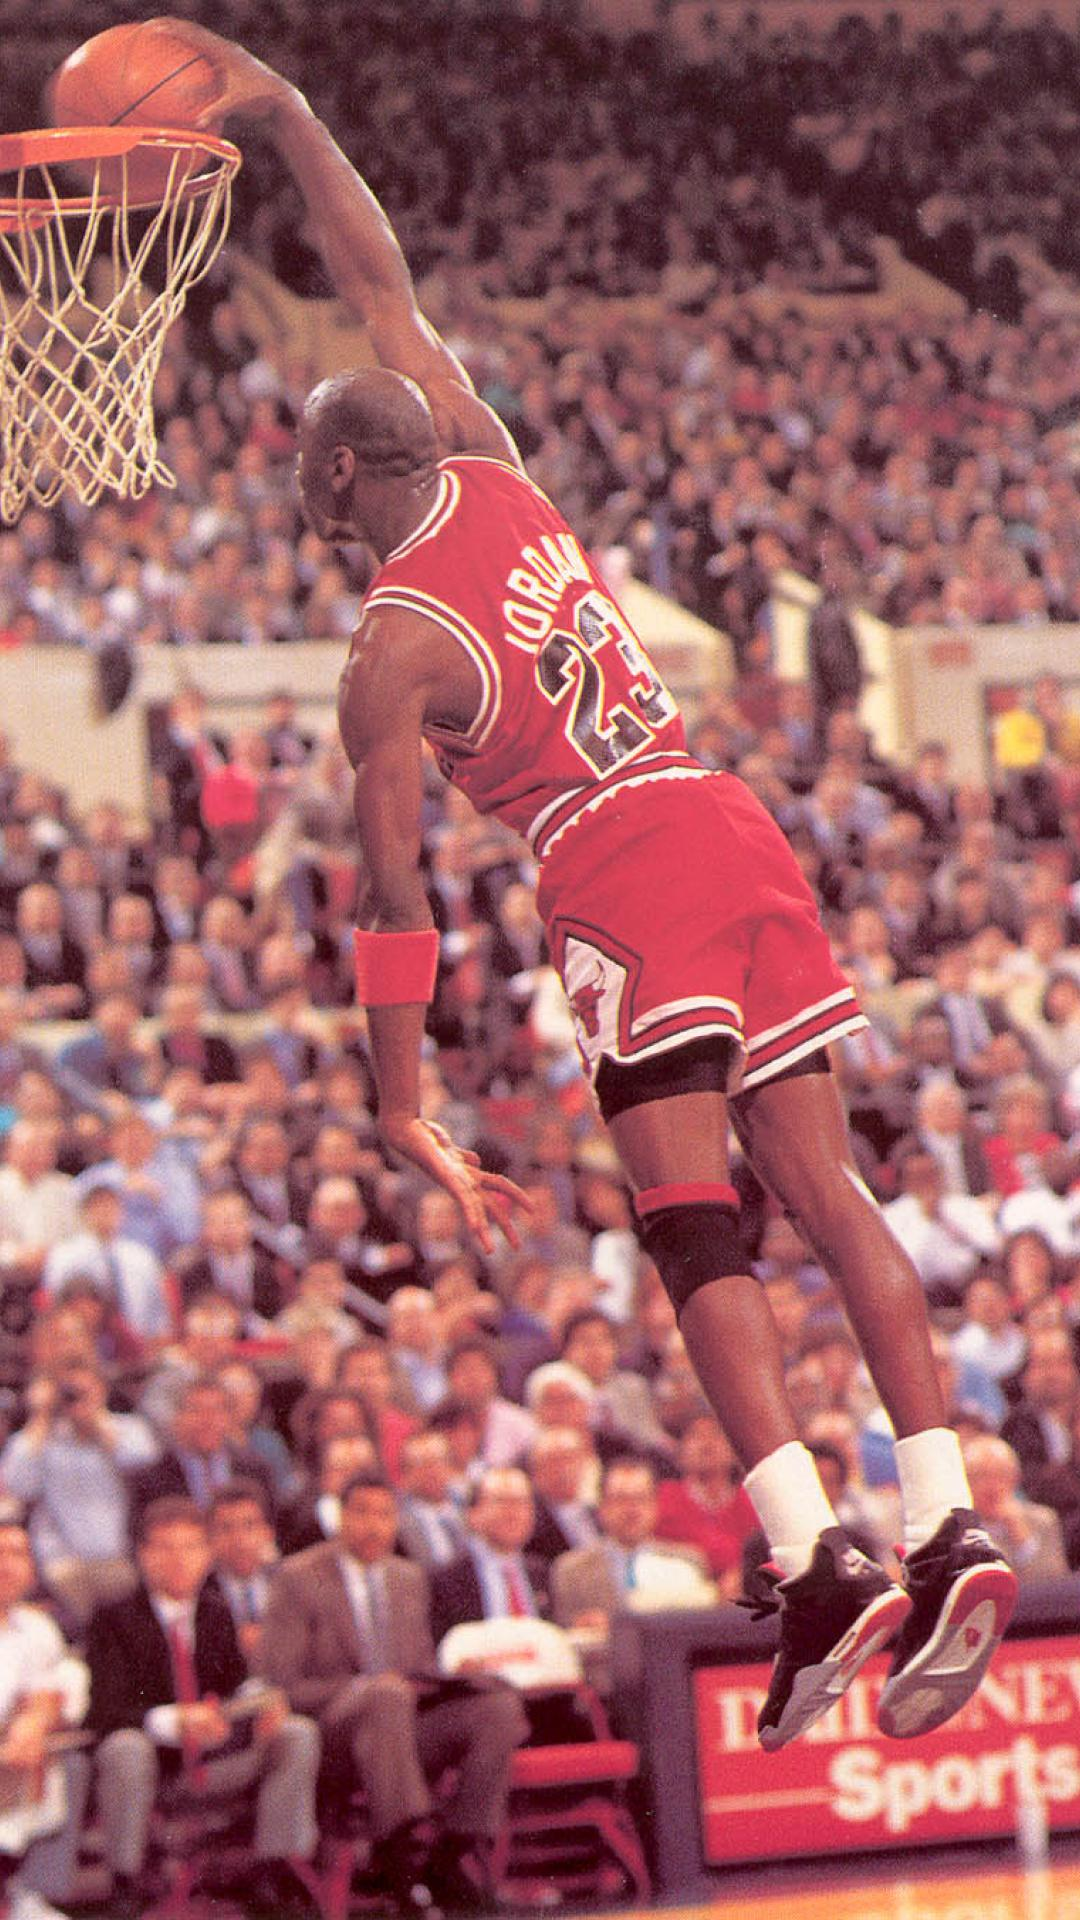 Michael Jordan Iphone Wallpaper